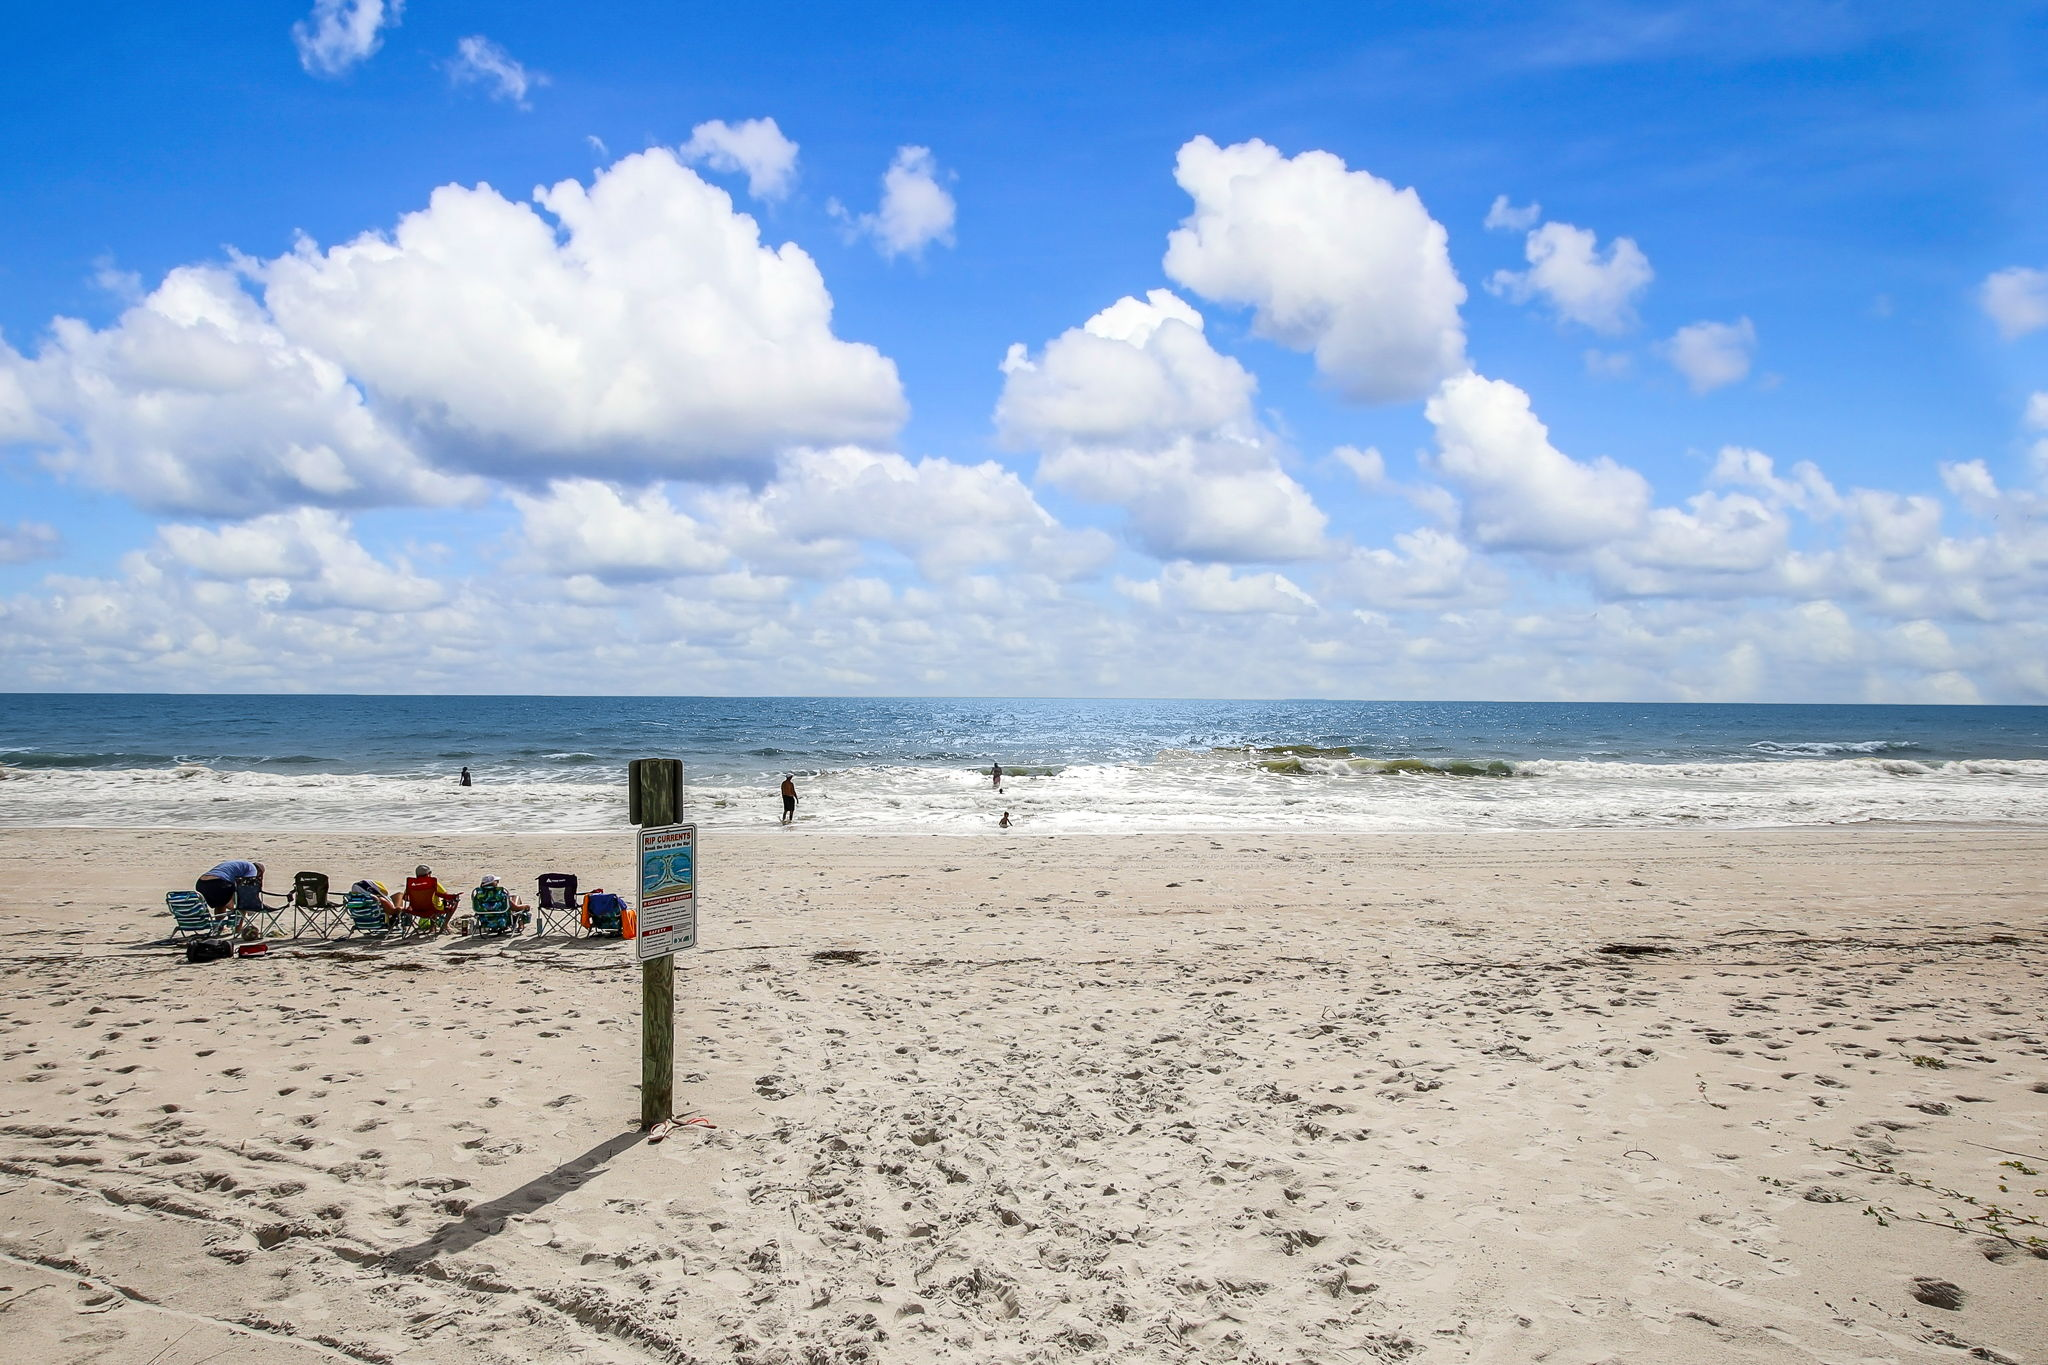 Amelia Island: one of the Top 15 Islands in the US by Travel + Leisure's World's Best Awards, 2021